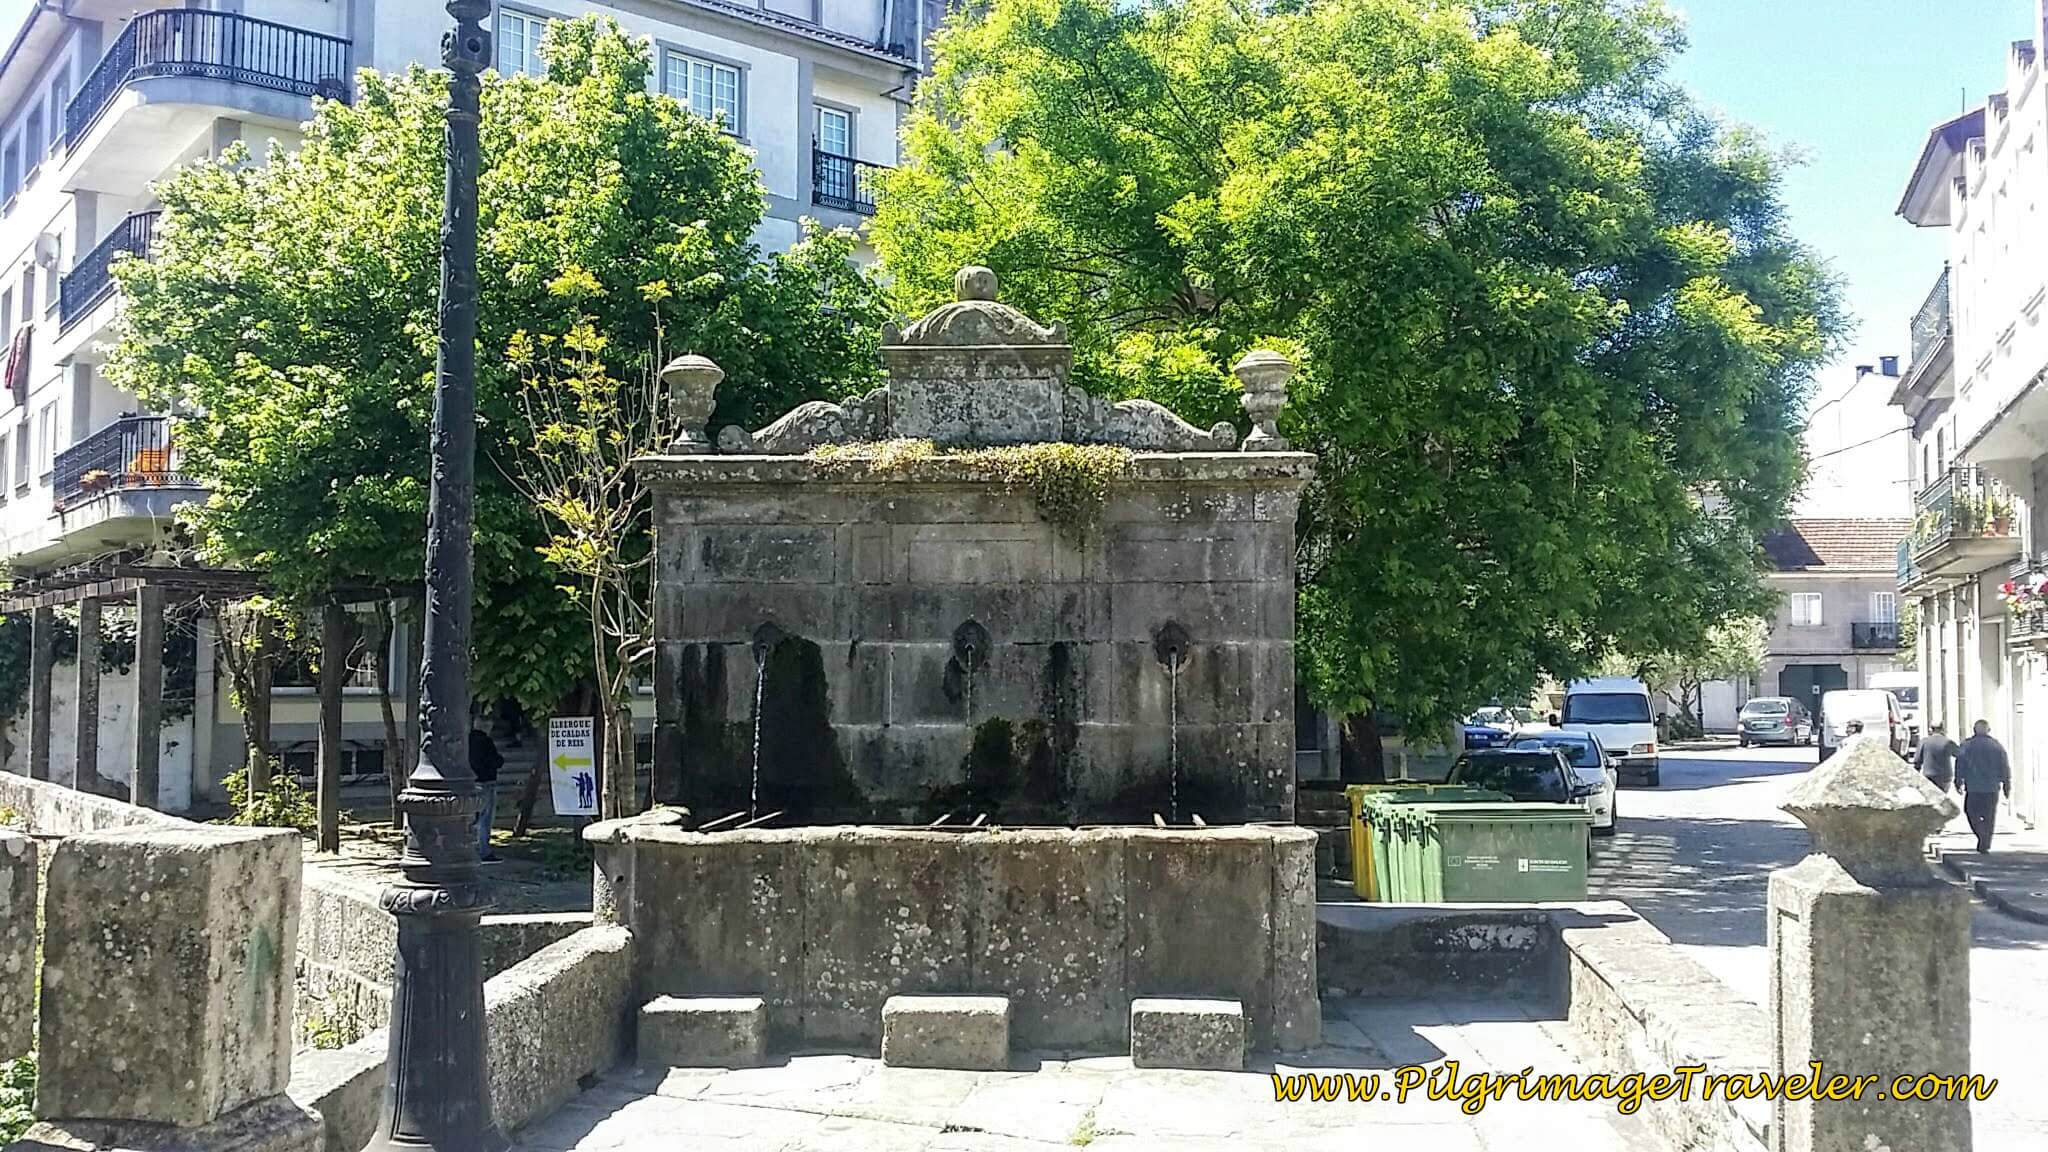 Old Fountain after the Puente Romano in Caldas de Reis on day twenty-three, Camino Portugués